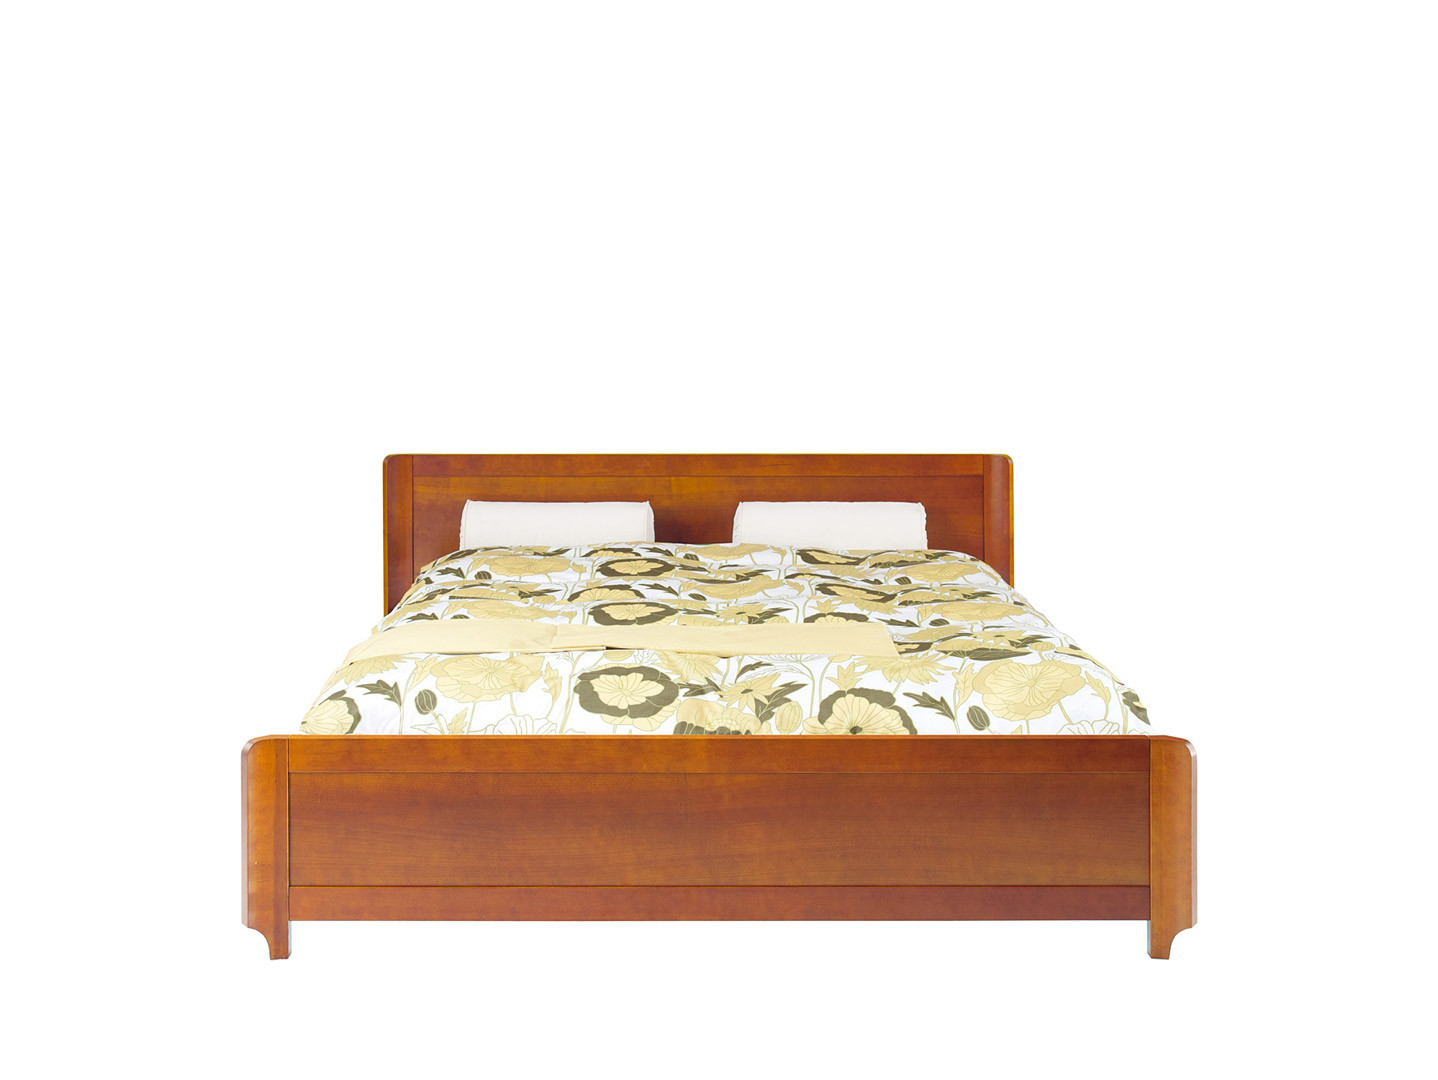 data/Alevil/ALEVIL KING SIZE BED.jpg